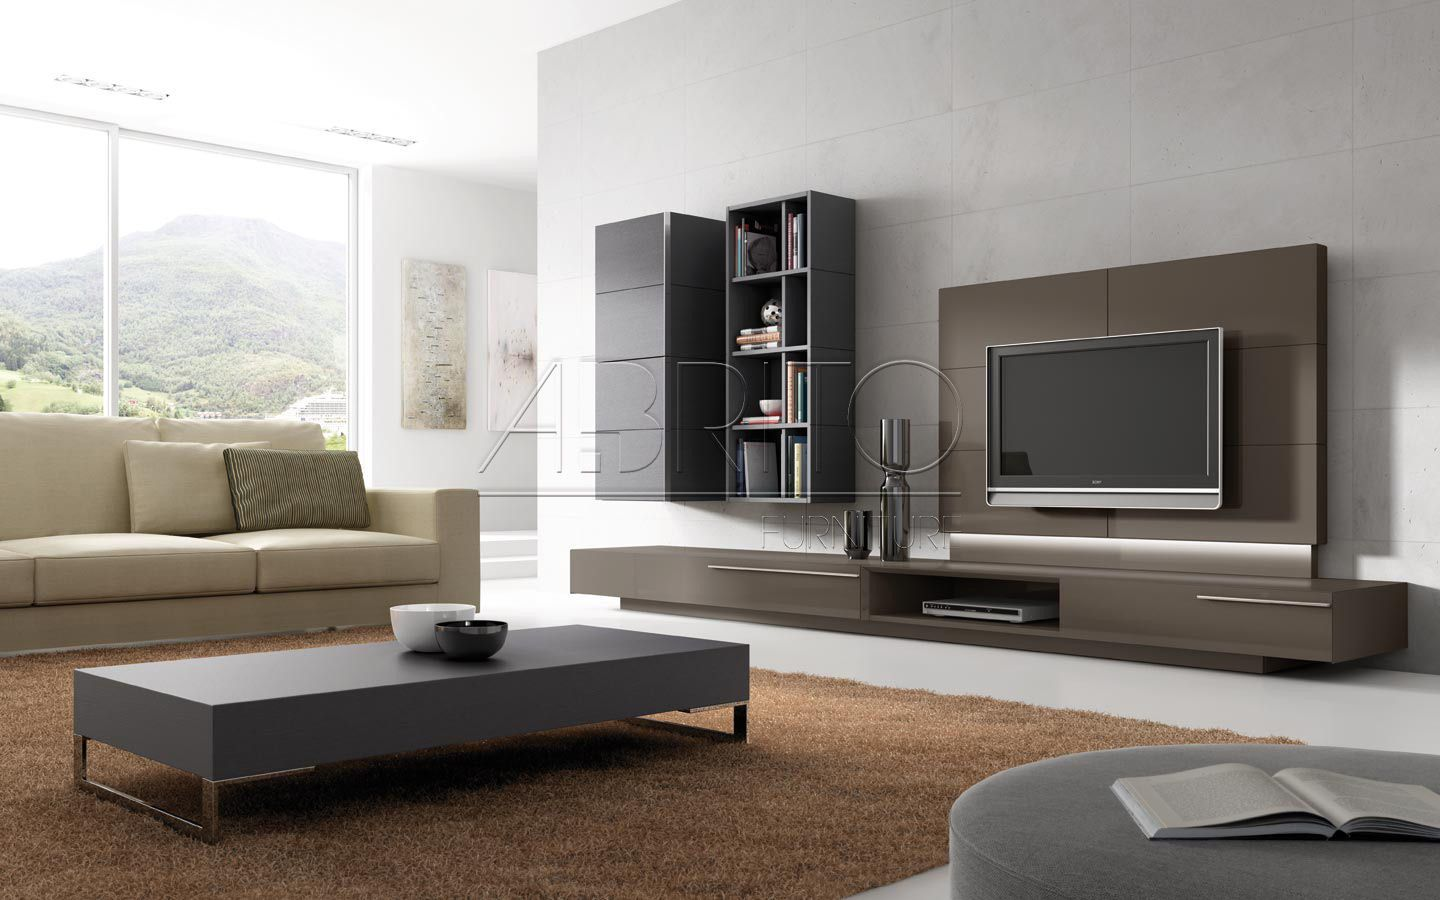 Wohnzimmer Wand Fernseher Browse Our Selection Of 15 Modern Tv Wall Units For